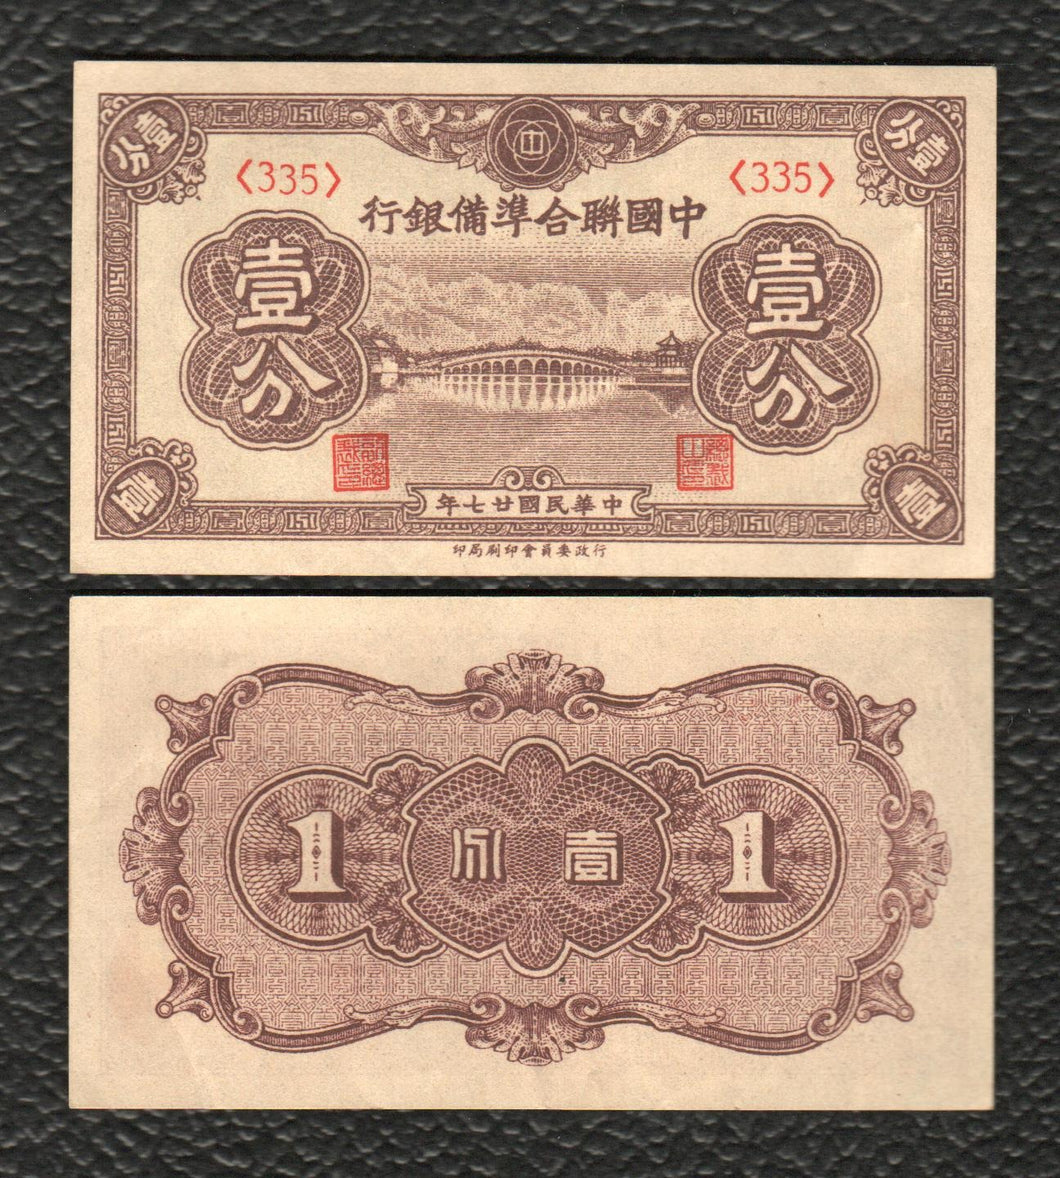 China P-J46 1938 1 Fen - Grades Almost Uncirculated